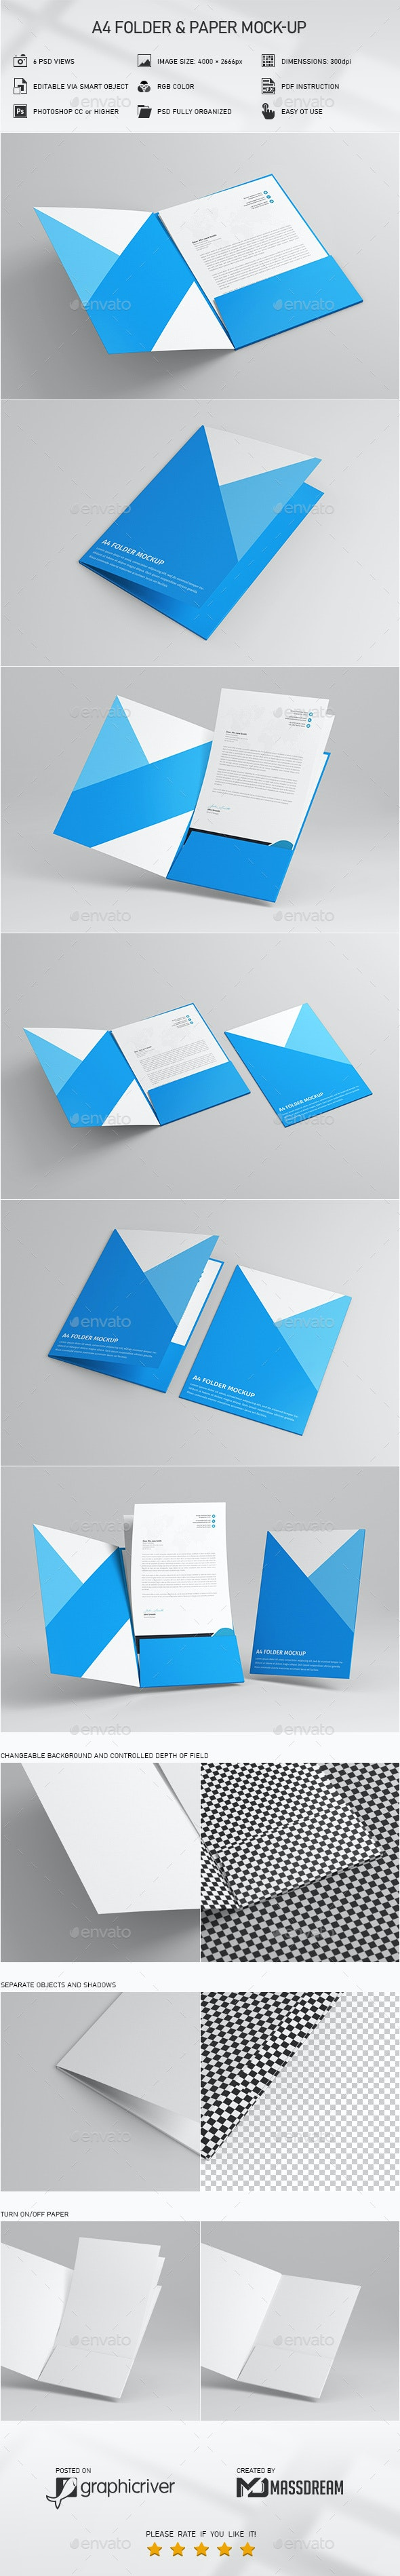 A4 Folder and Paper Mock-Up - Product Mock-Ups Graphics